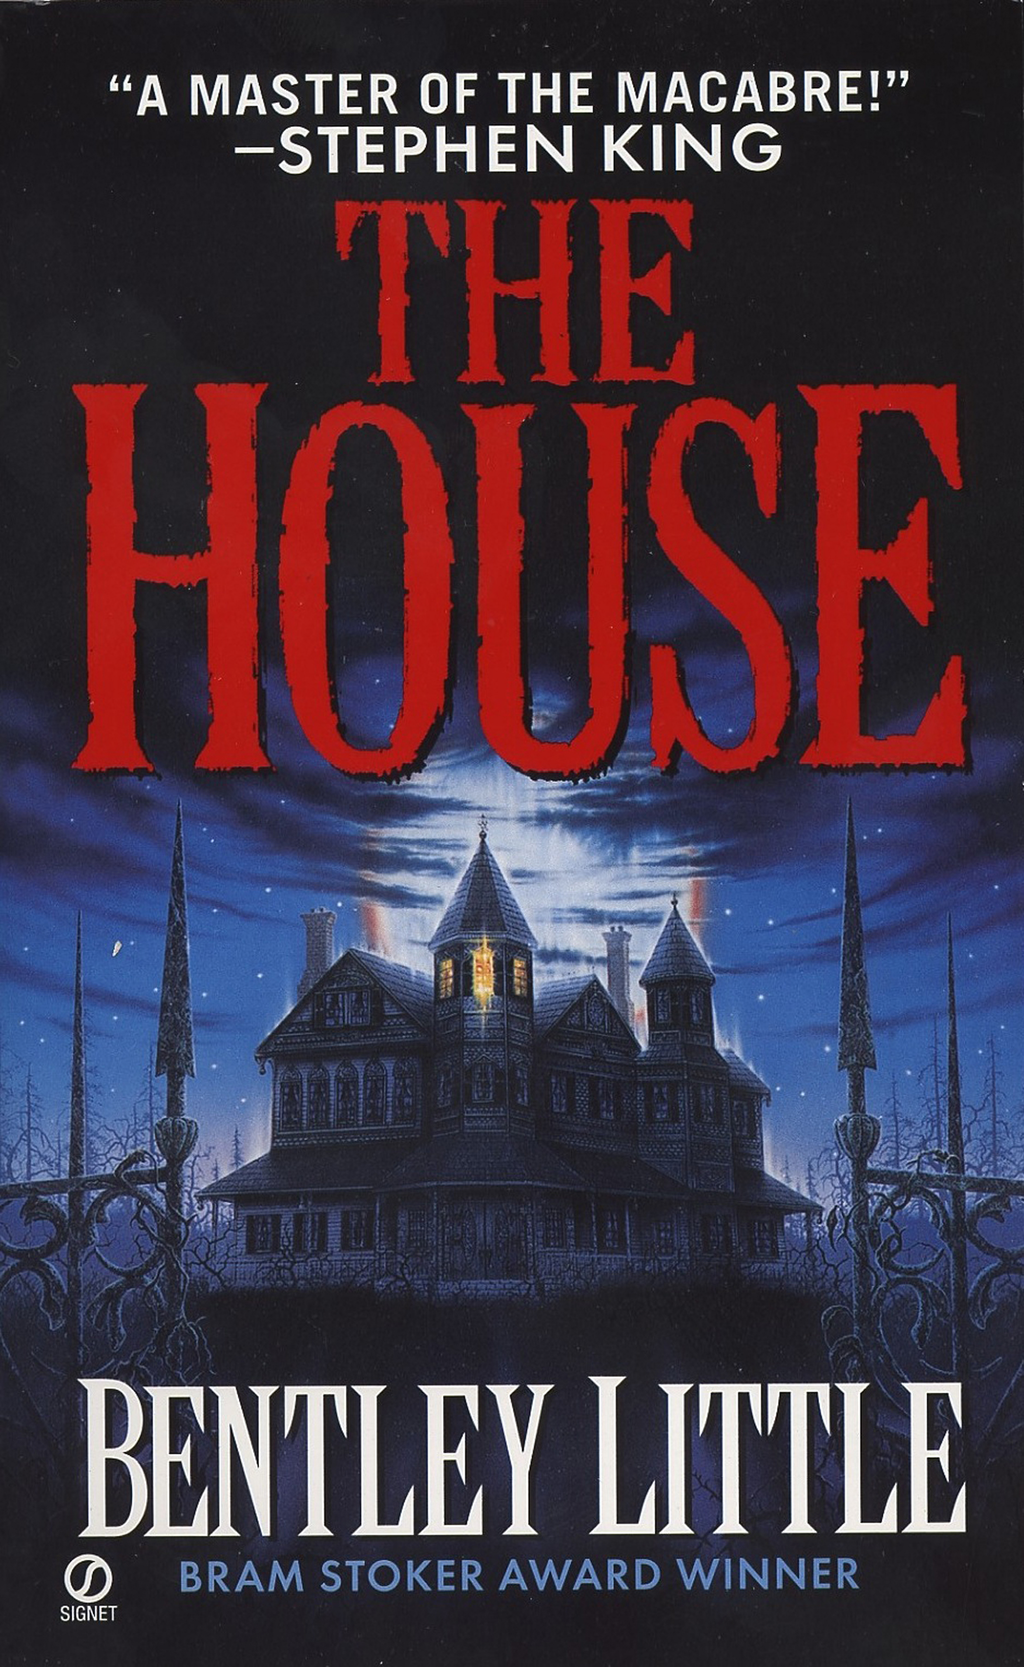 The House By: Bentley Little